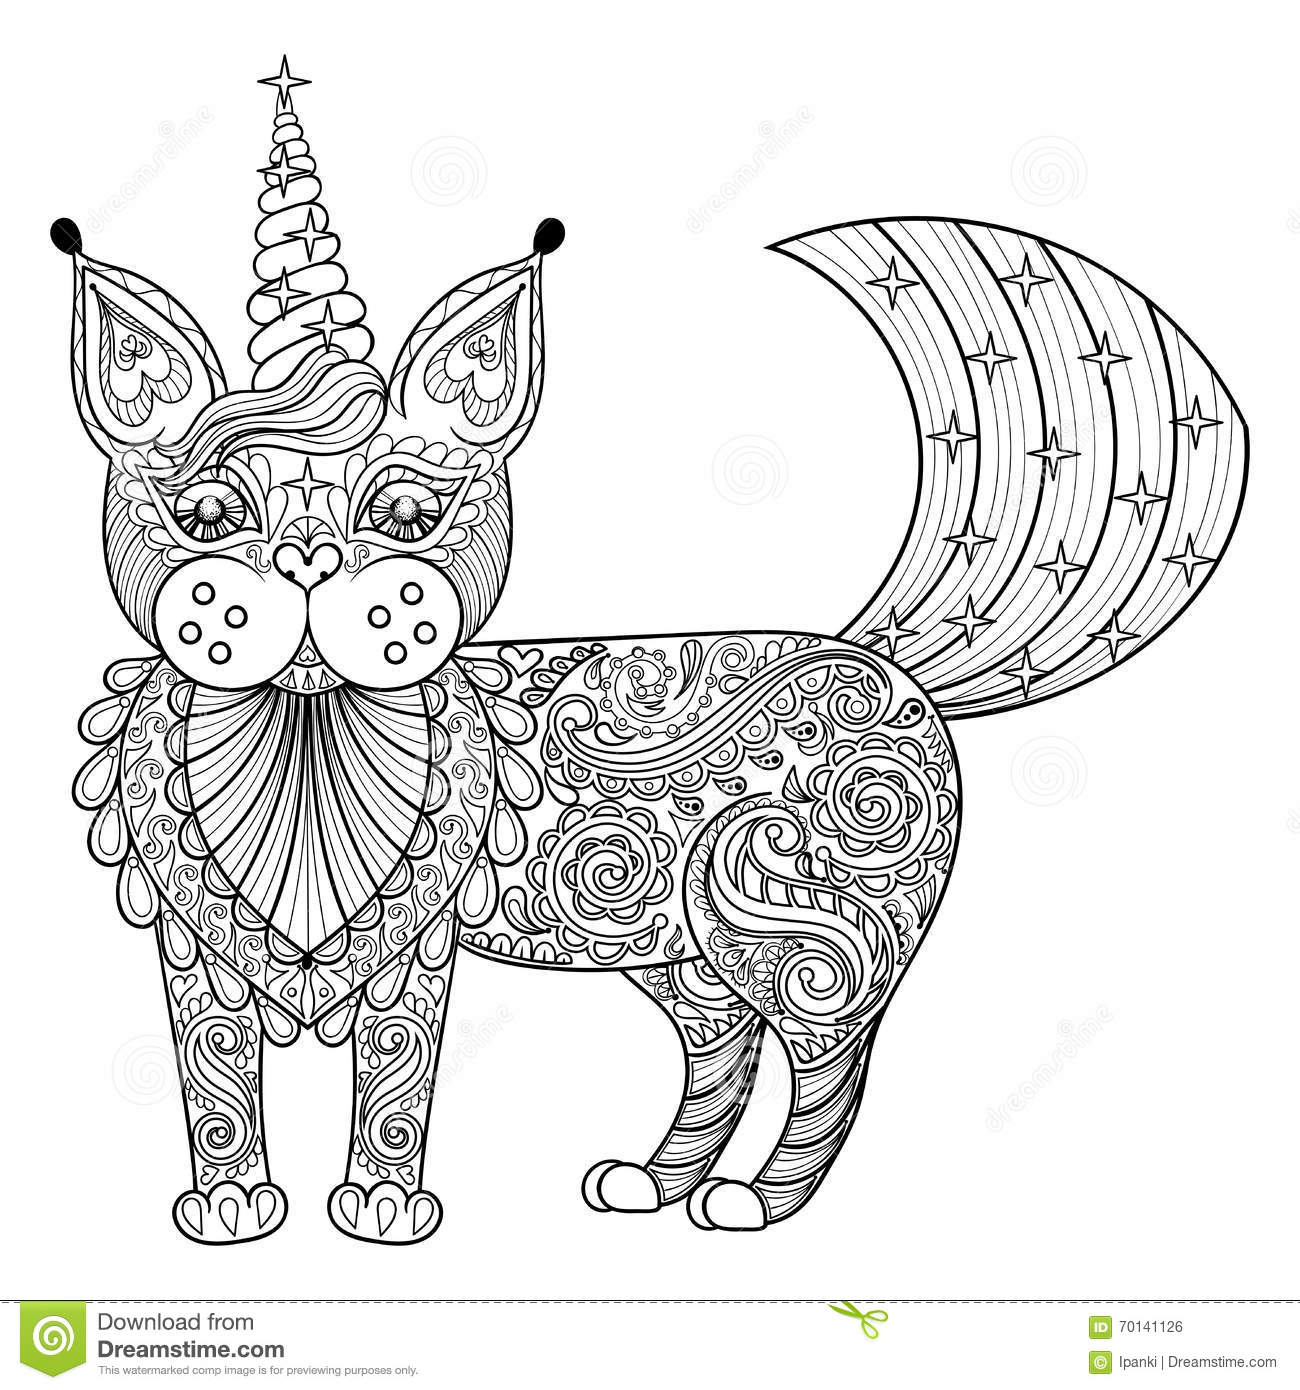 unicorn stock vector illustration of unicorn fantasy autovector zentangle magic cat unicorn black print for adult